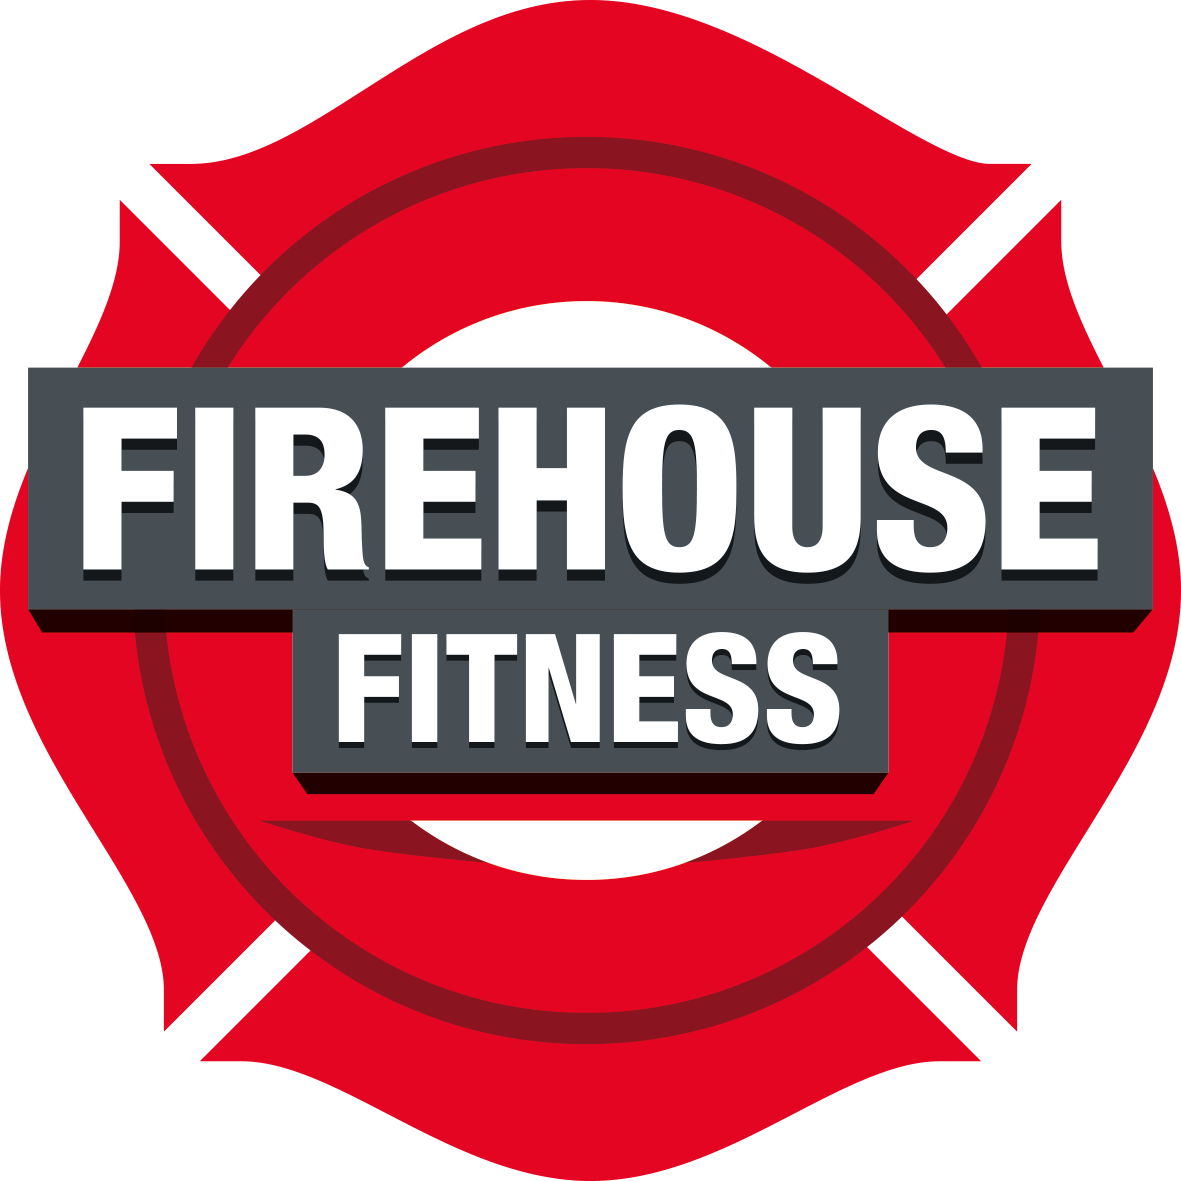 Firehouse Fitness Gym Logo